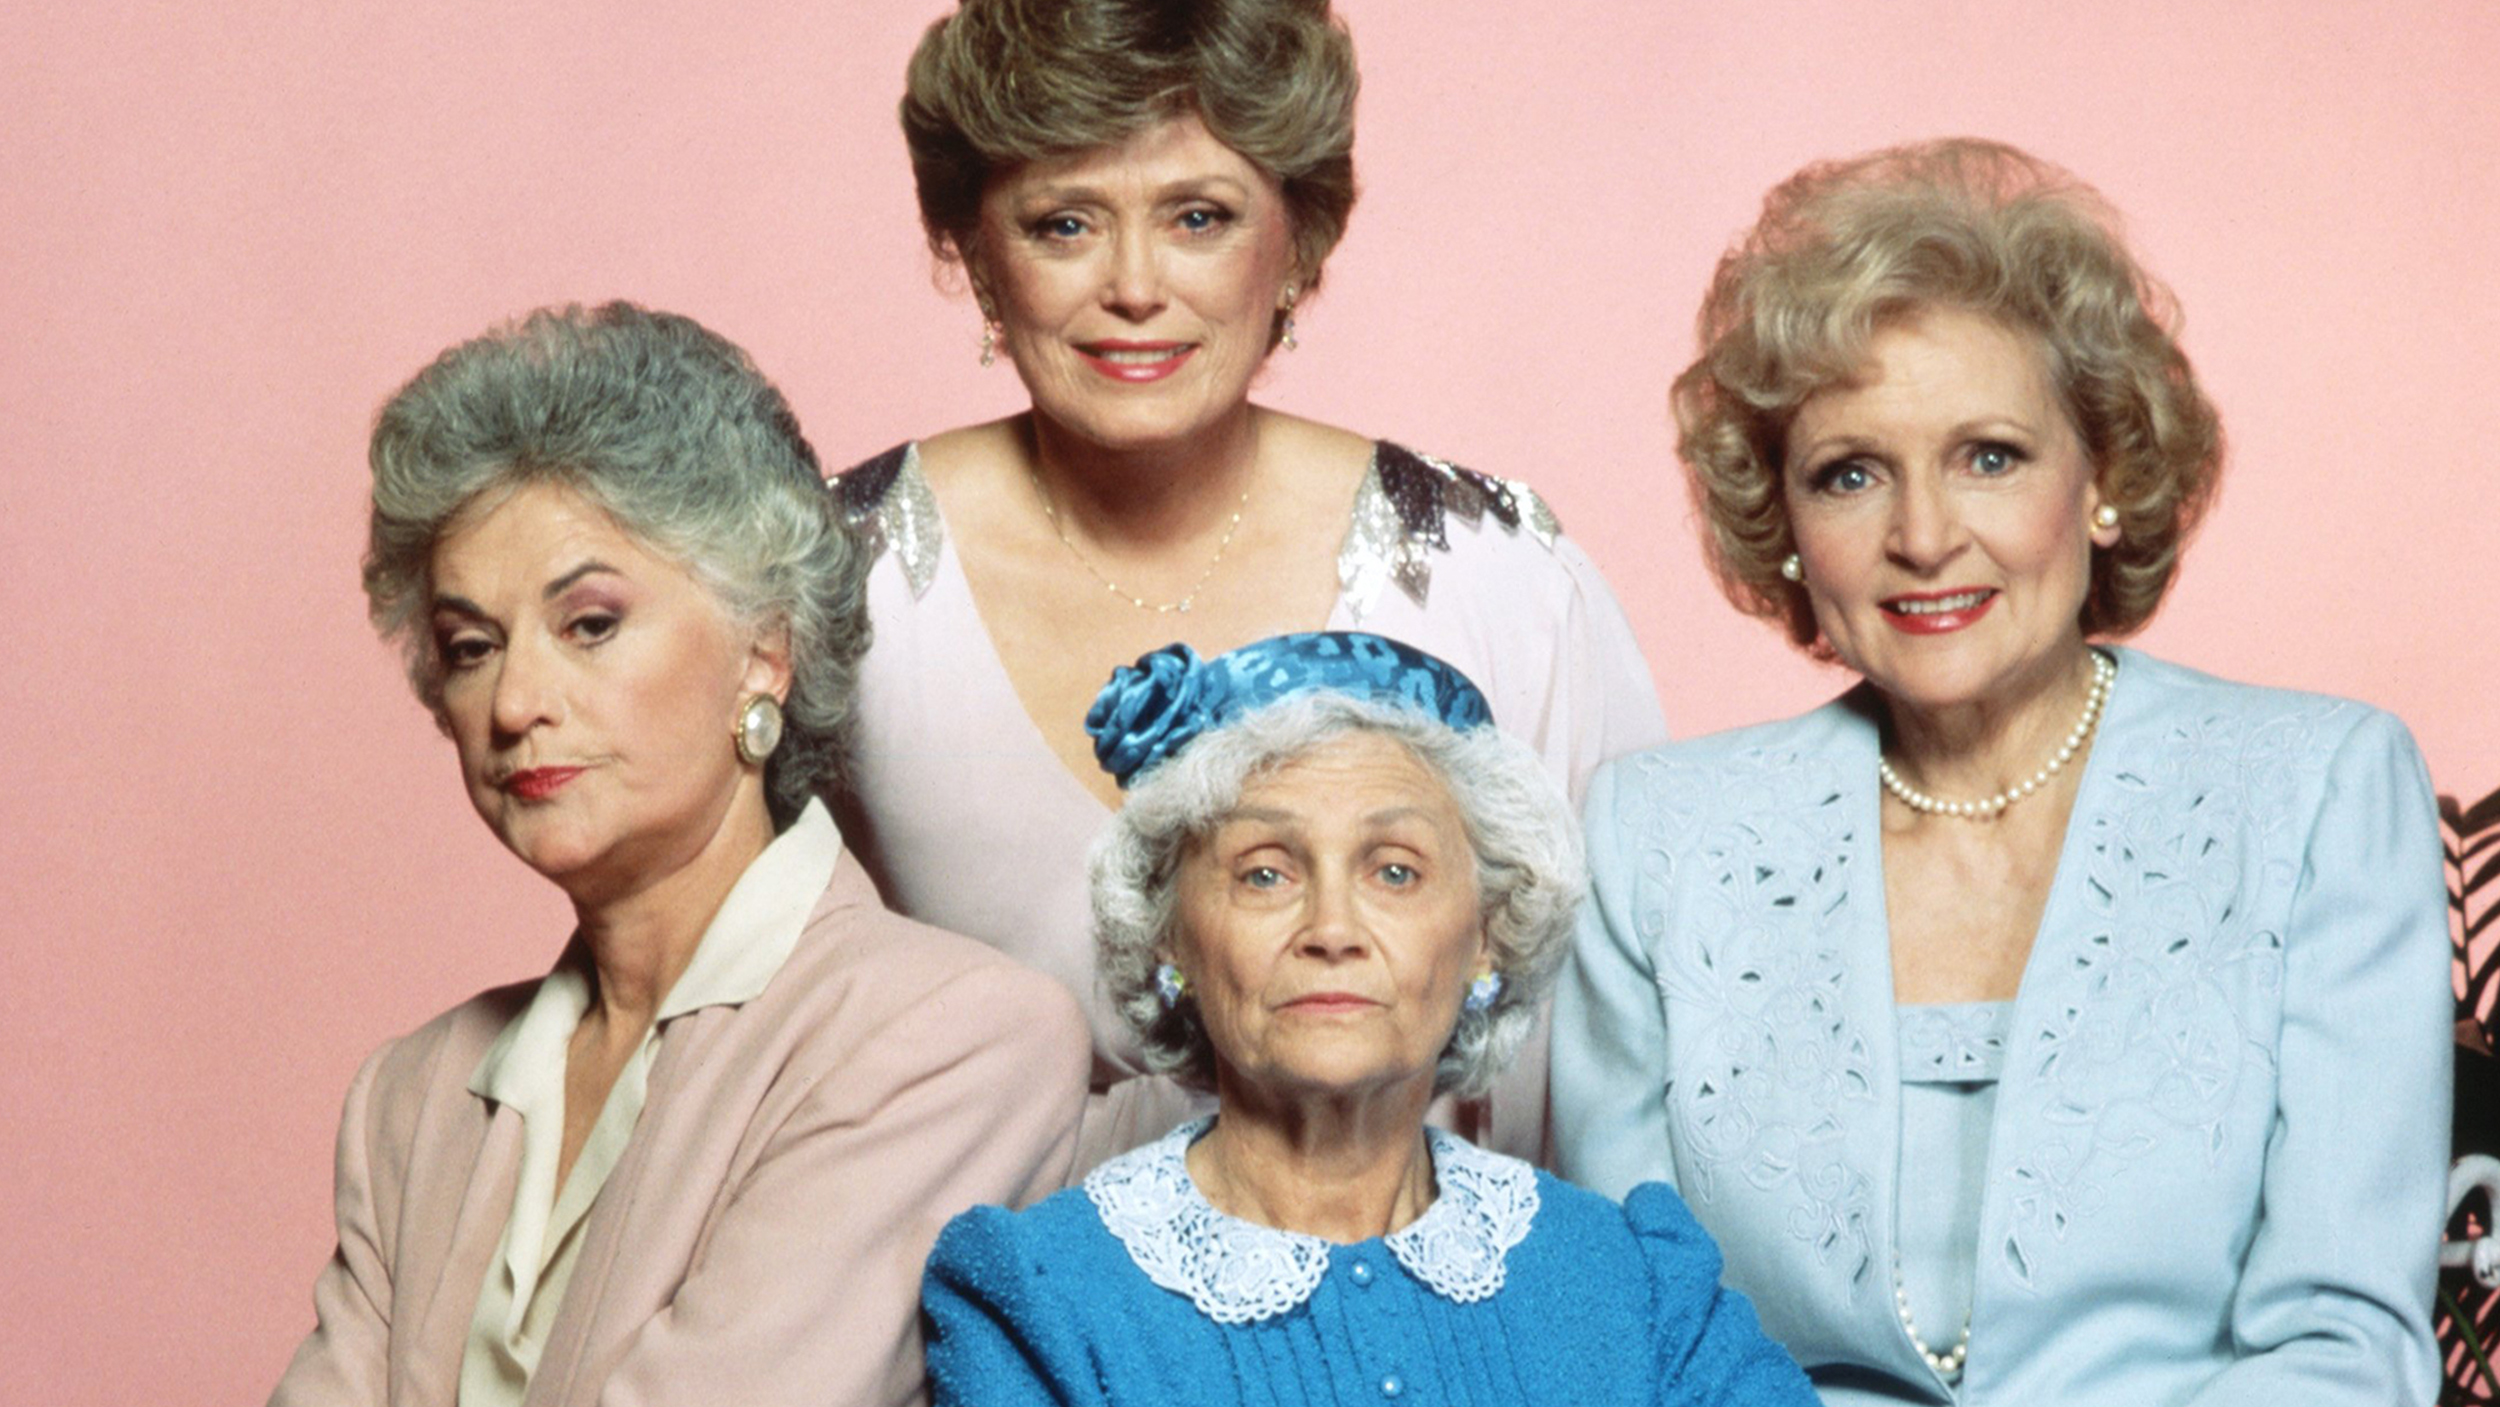 THE GOLDEN GIRLS -- Season 1 -- Pictured: (l-r) -- Photo by: Herb Ball/NBC/NBCU Photo Bank